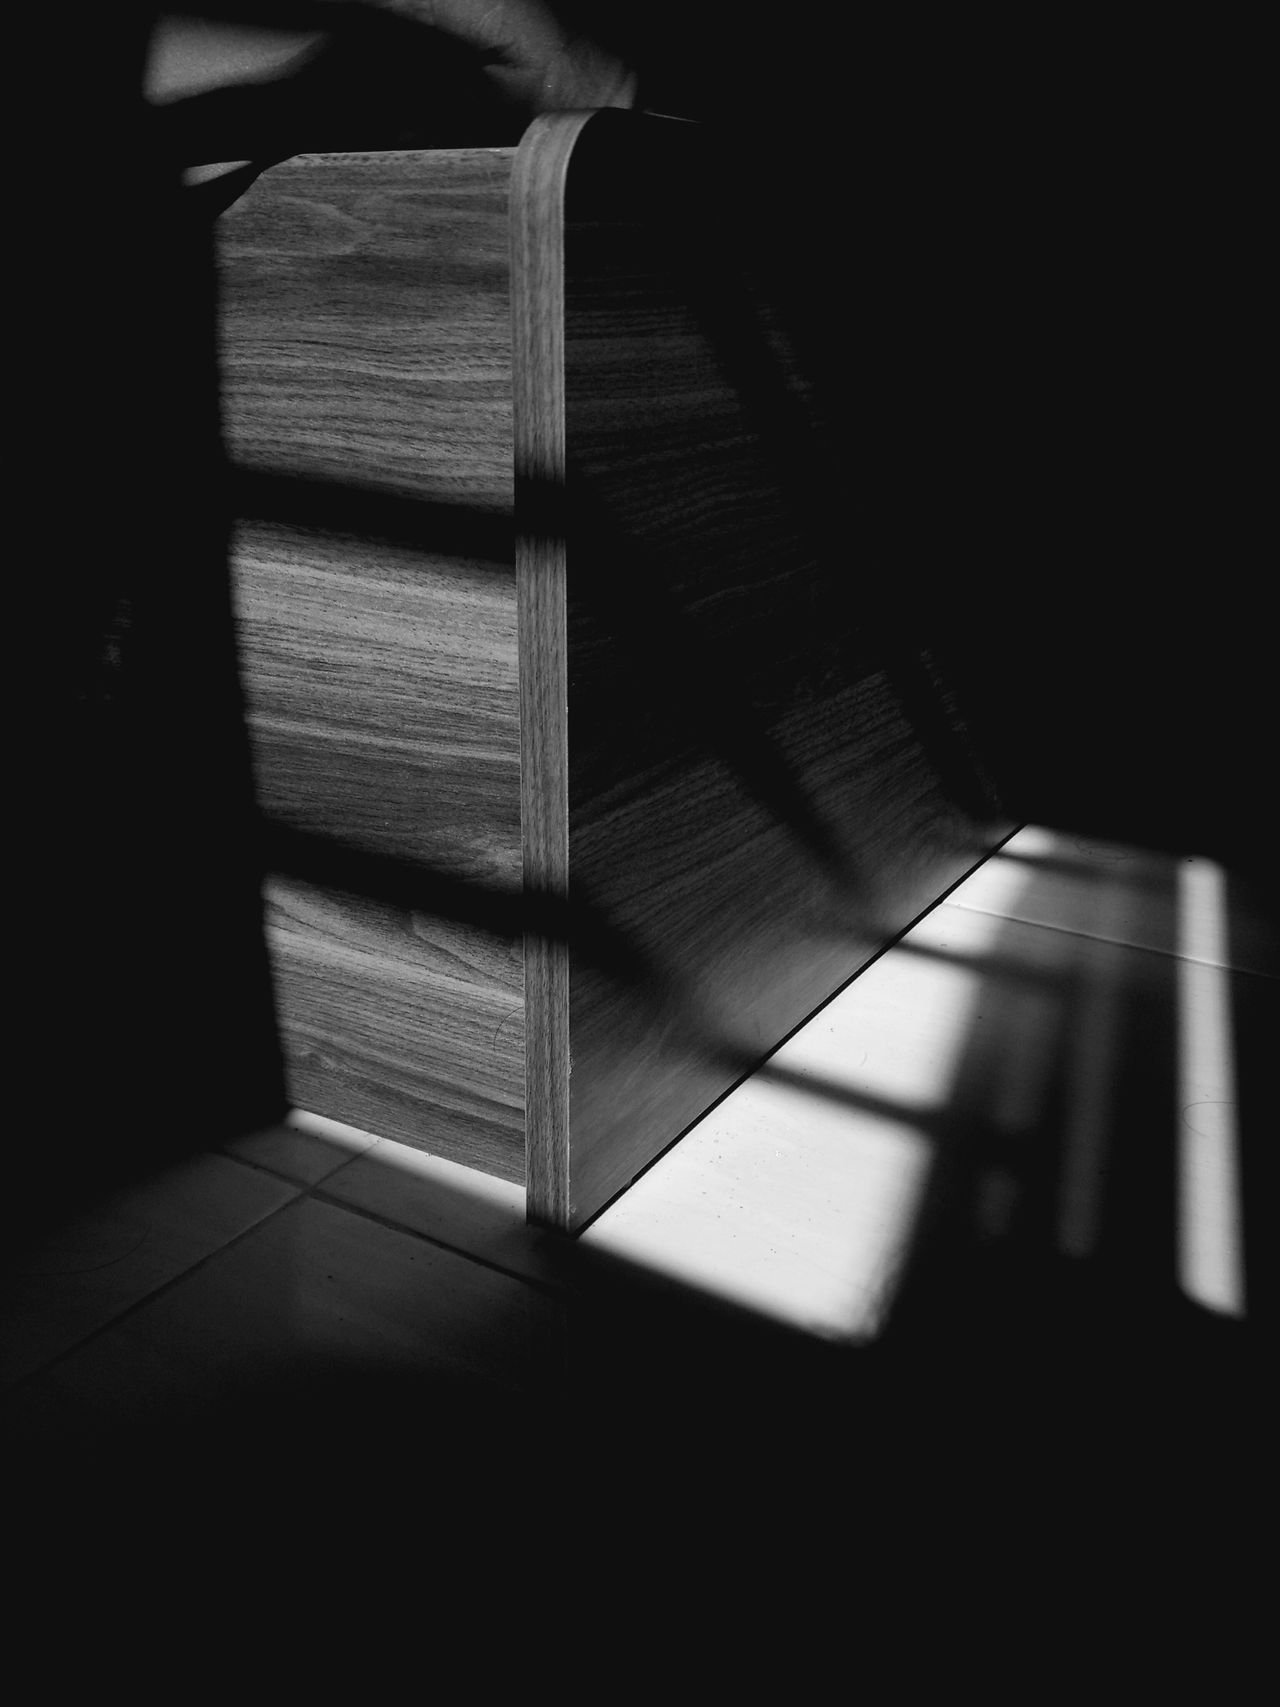 Morning sun over the window Shadow Indoors  Sunlight No People Close-up Day Pattern Morning Shadow And Light Blackandwhite Bedroom Wood - Material